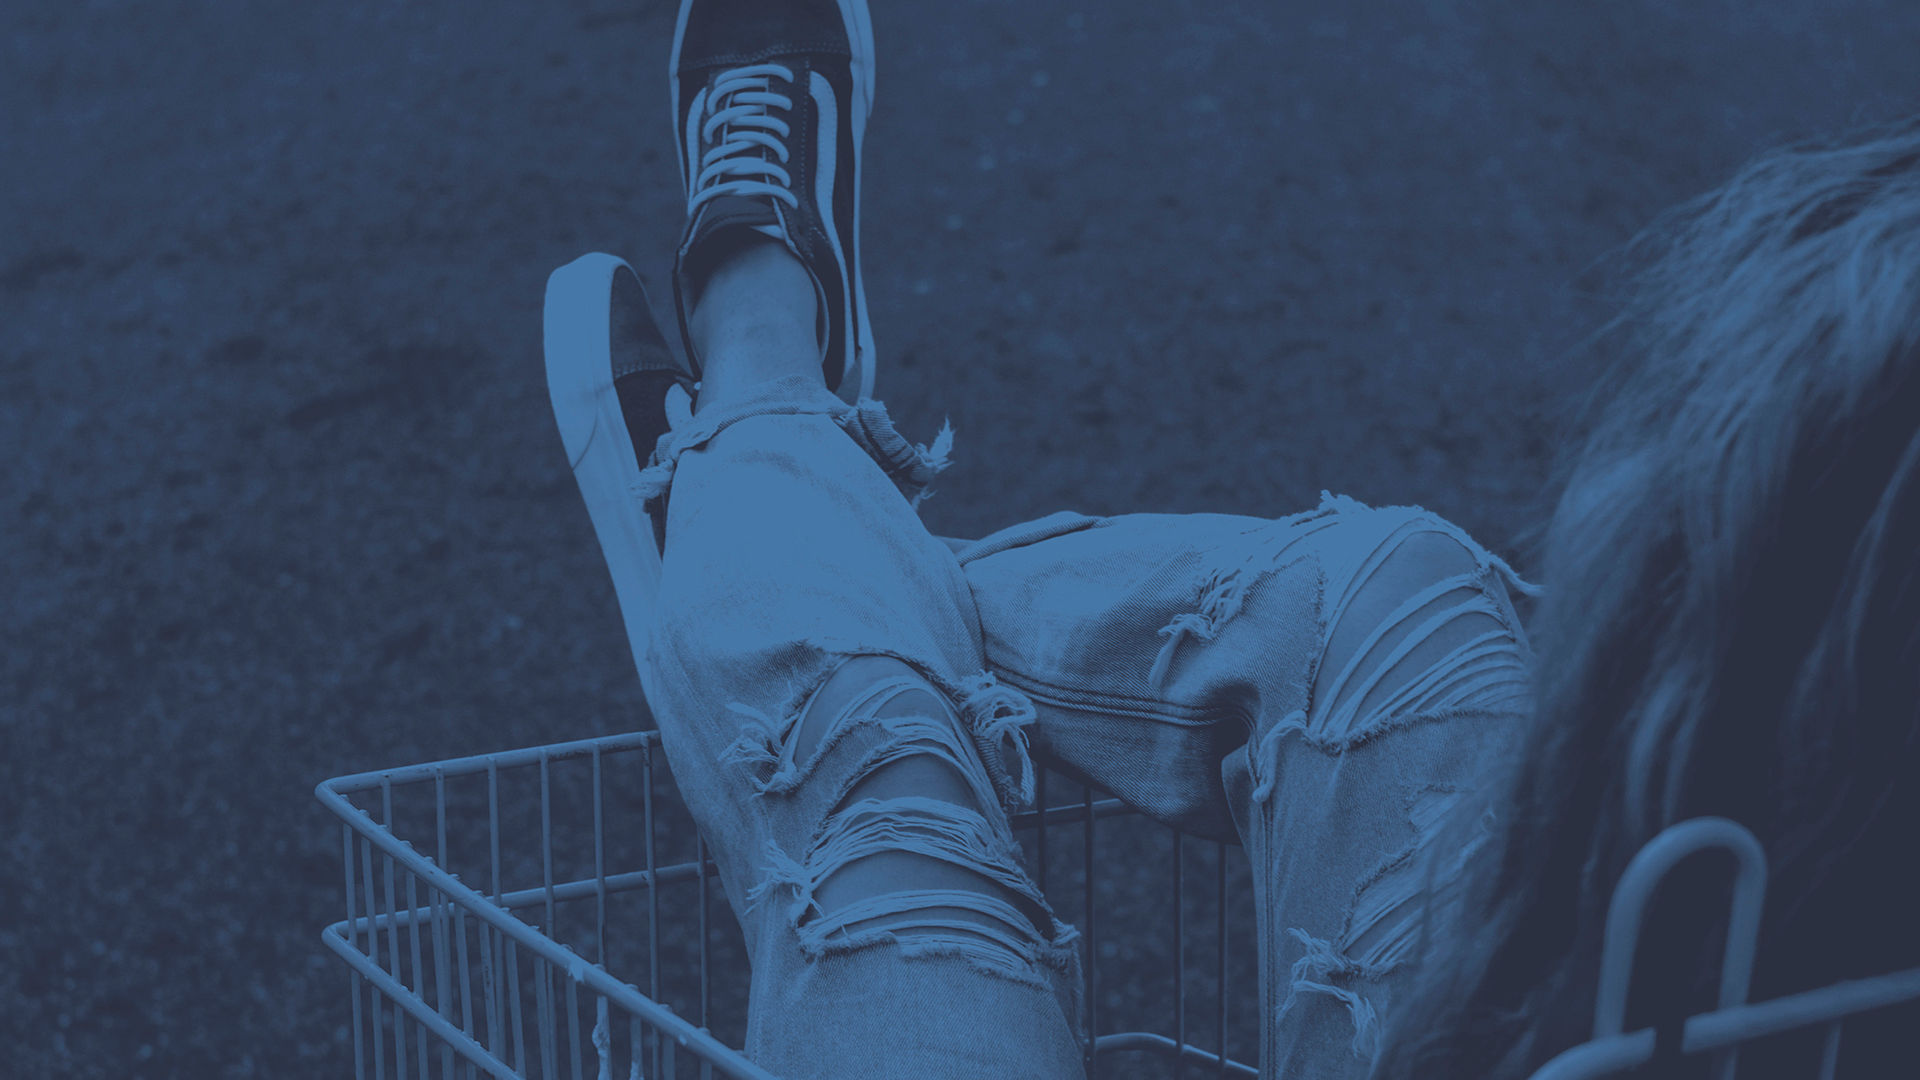 A young person sitting in a shopping trolley, wearing Vans shoes and very ripped denim jeans